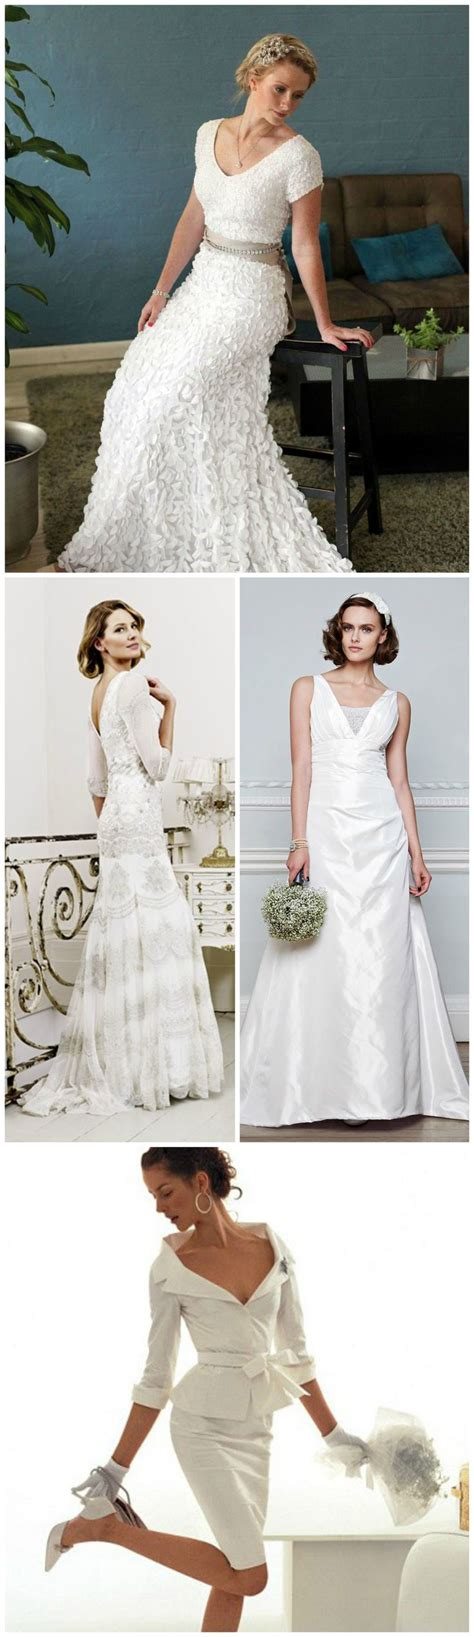 Wedding Dresses For 50 by Wedding Dresses For Brides 40 50 60 70